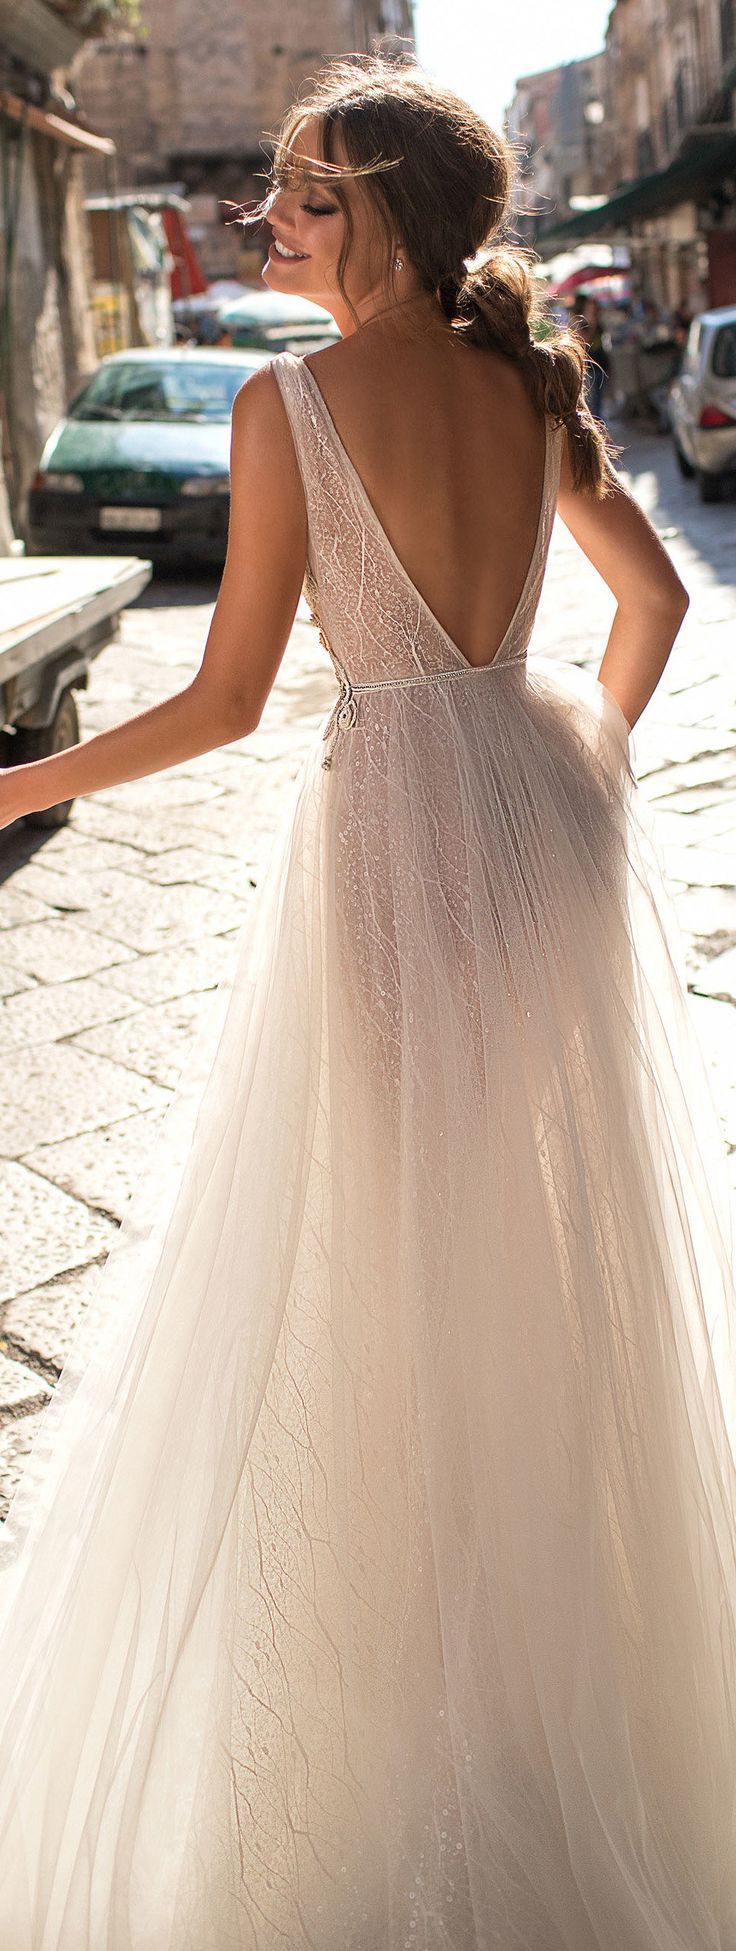 MUSE by Berta: Sicily wedding dress collection